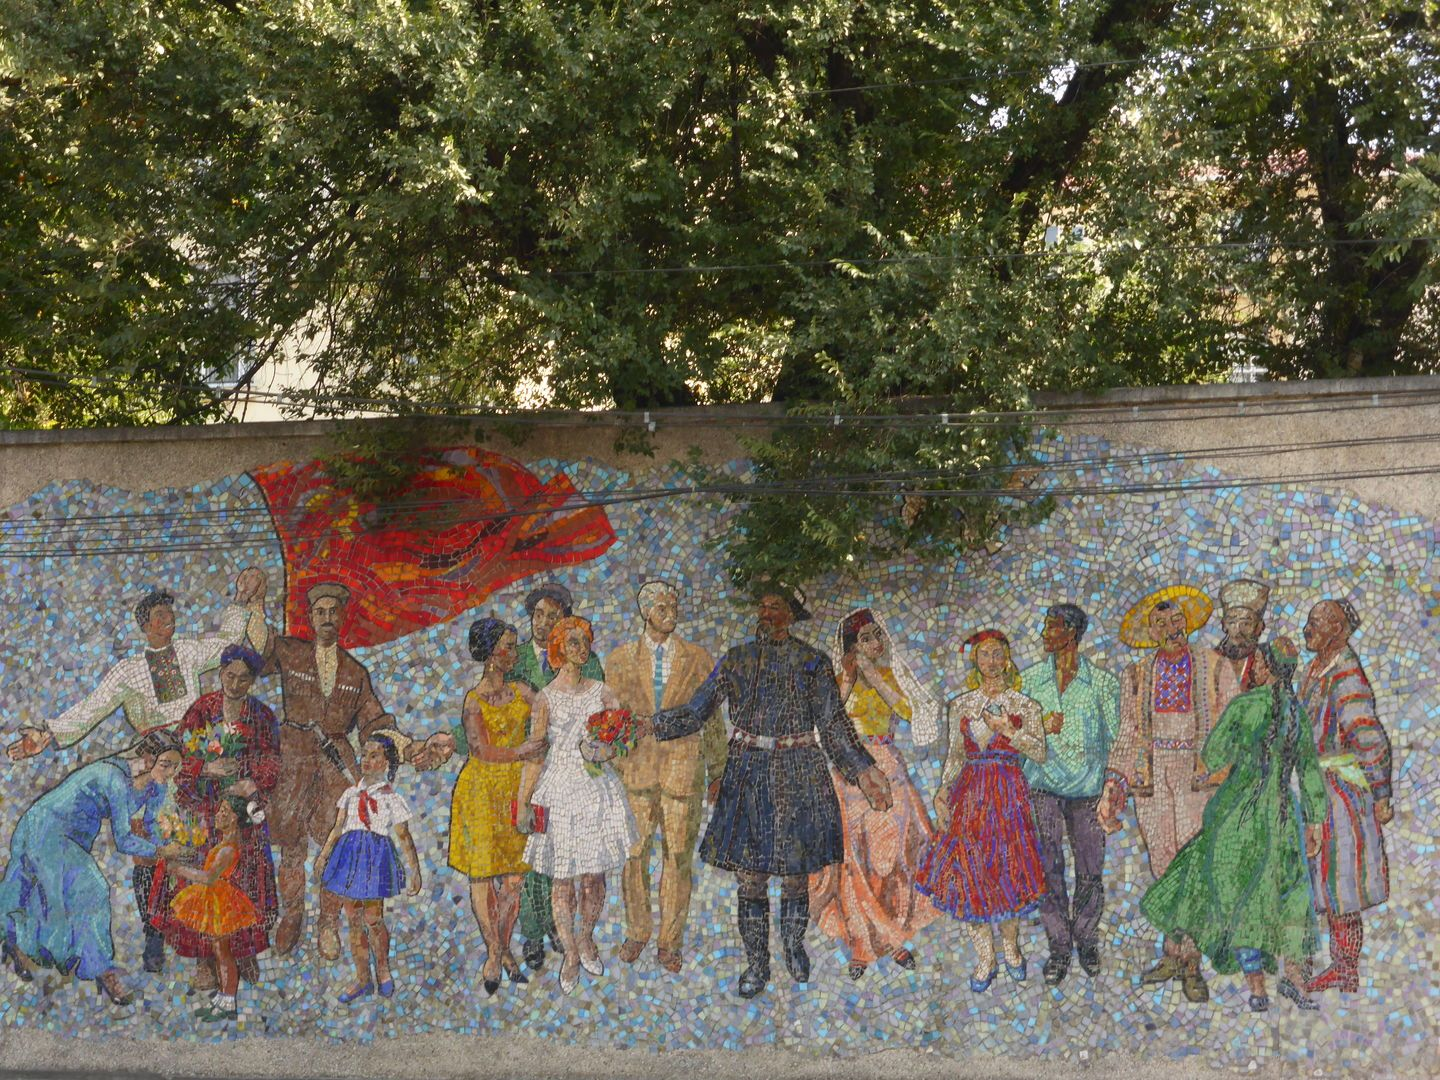 mosaic friendship of nations in Bishkek, Central Asia Tour